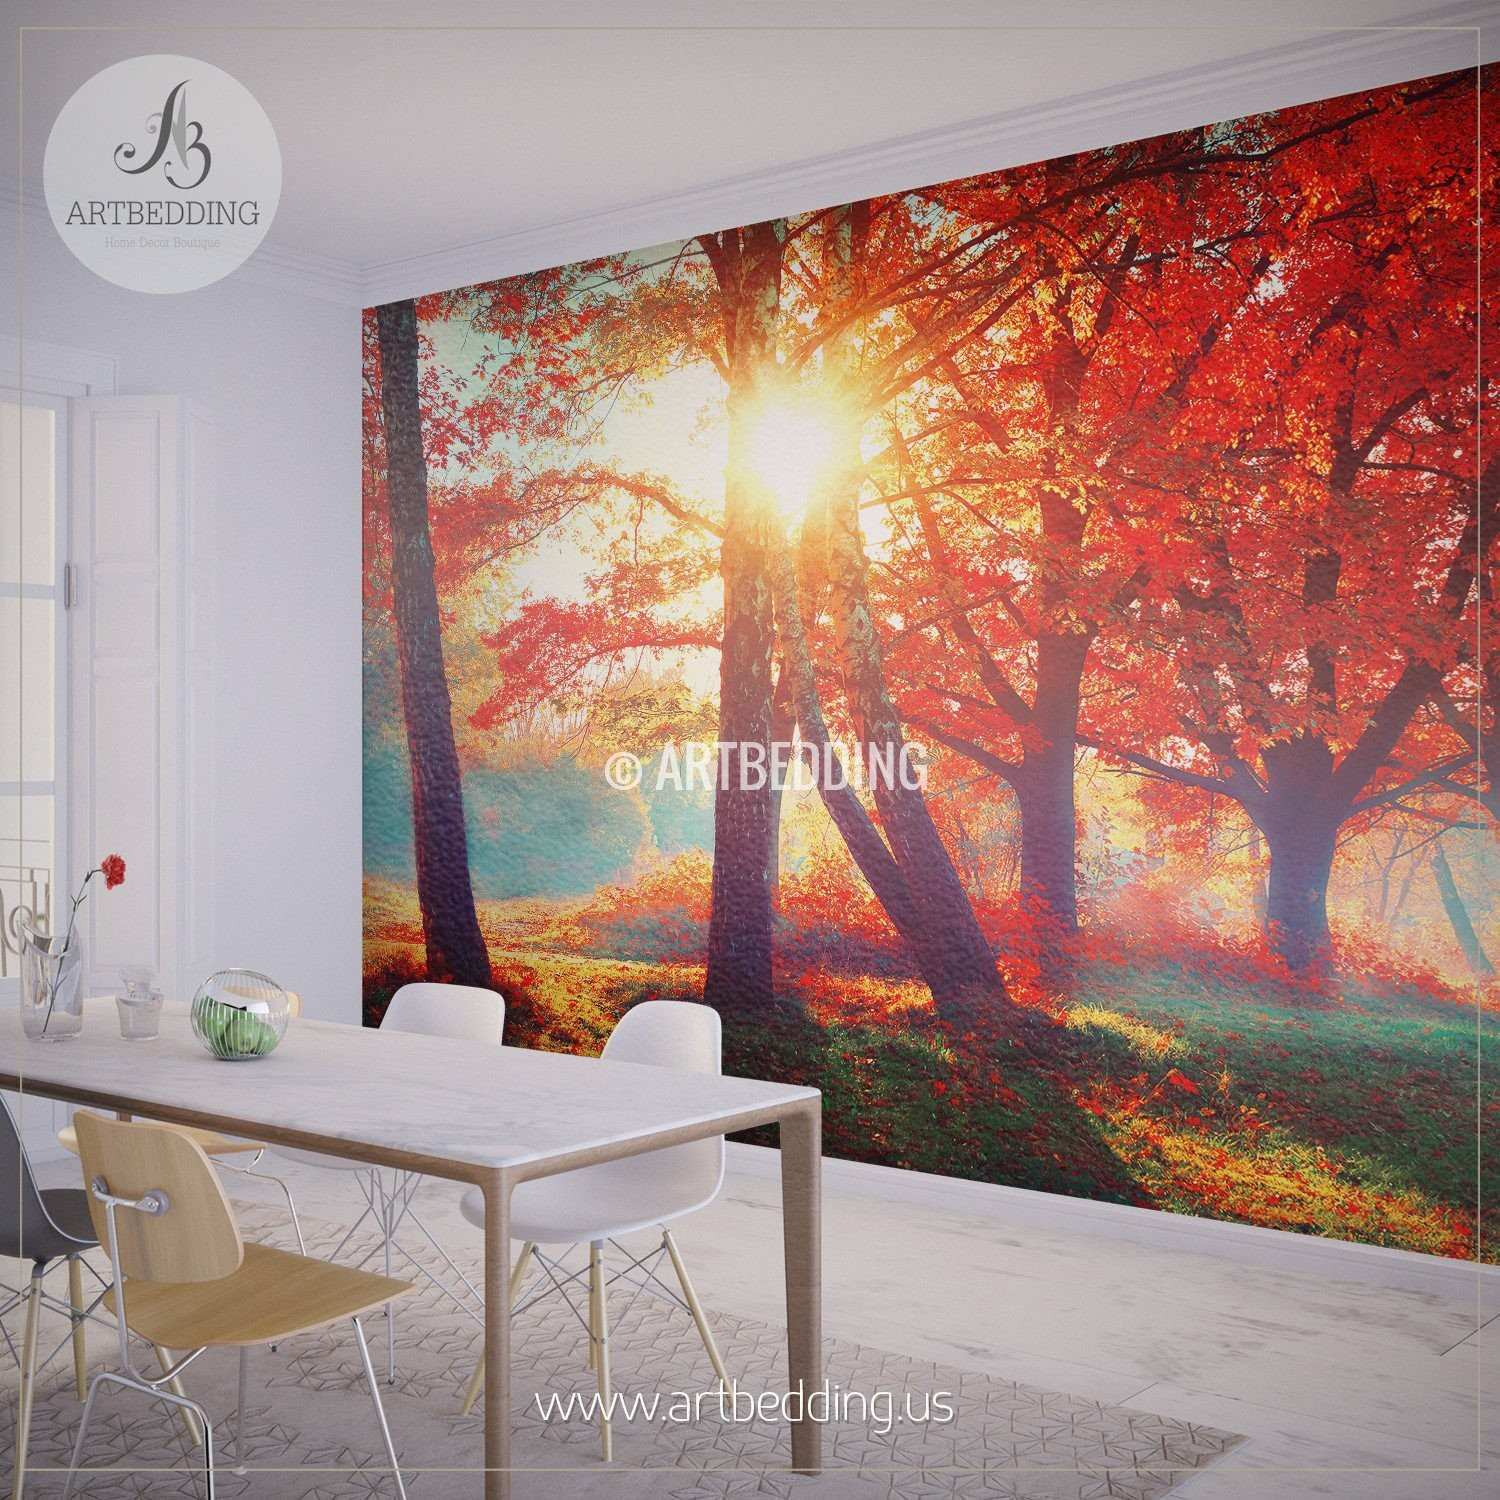 Fresh Design Self Adhesive Wall Murals Best Home Design Ideas